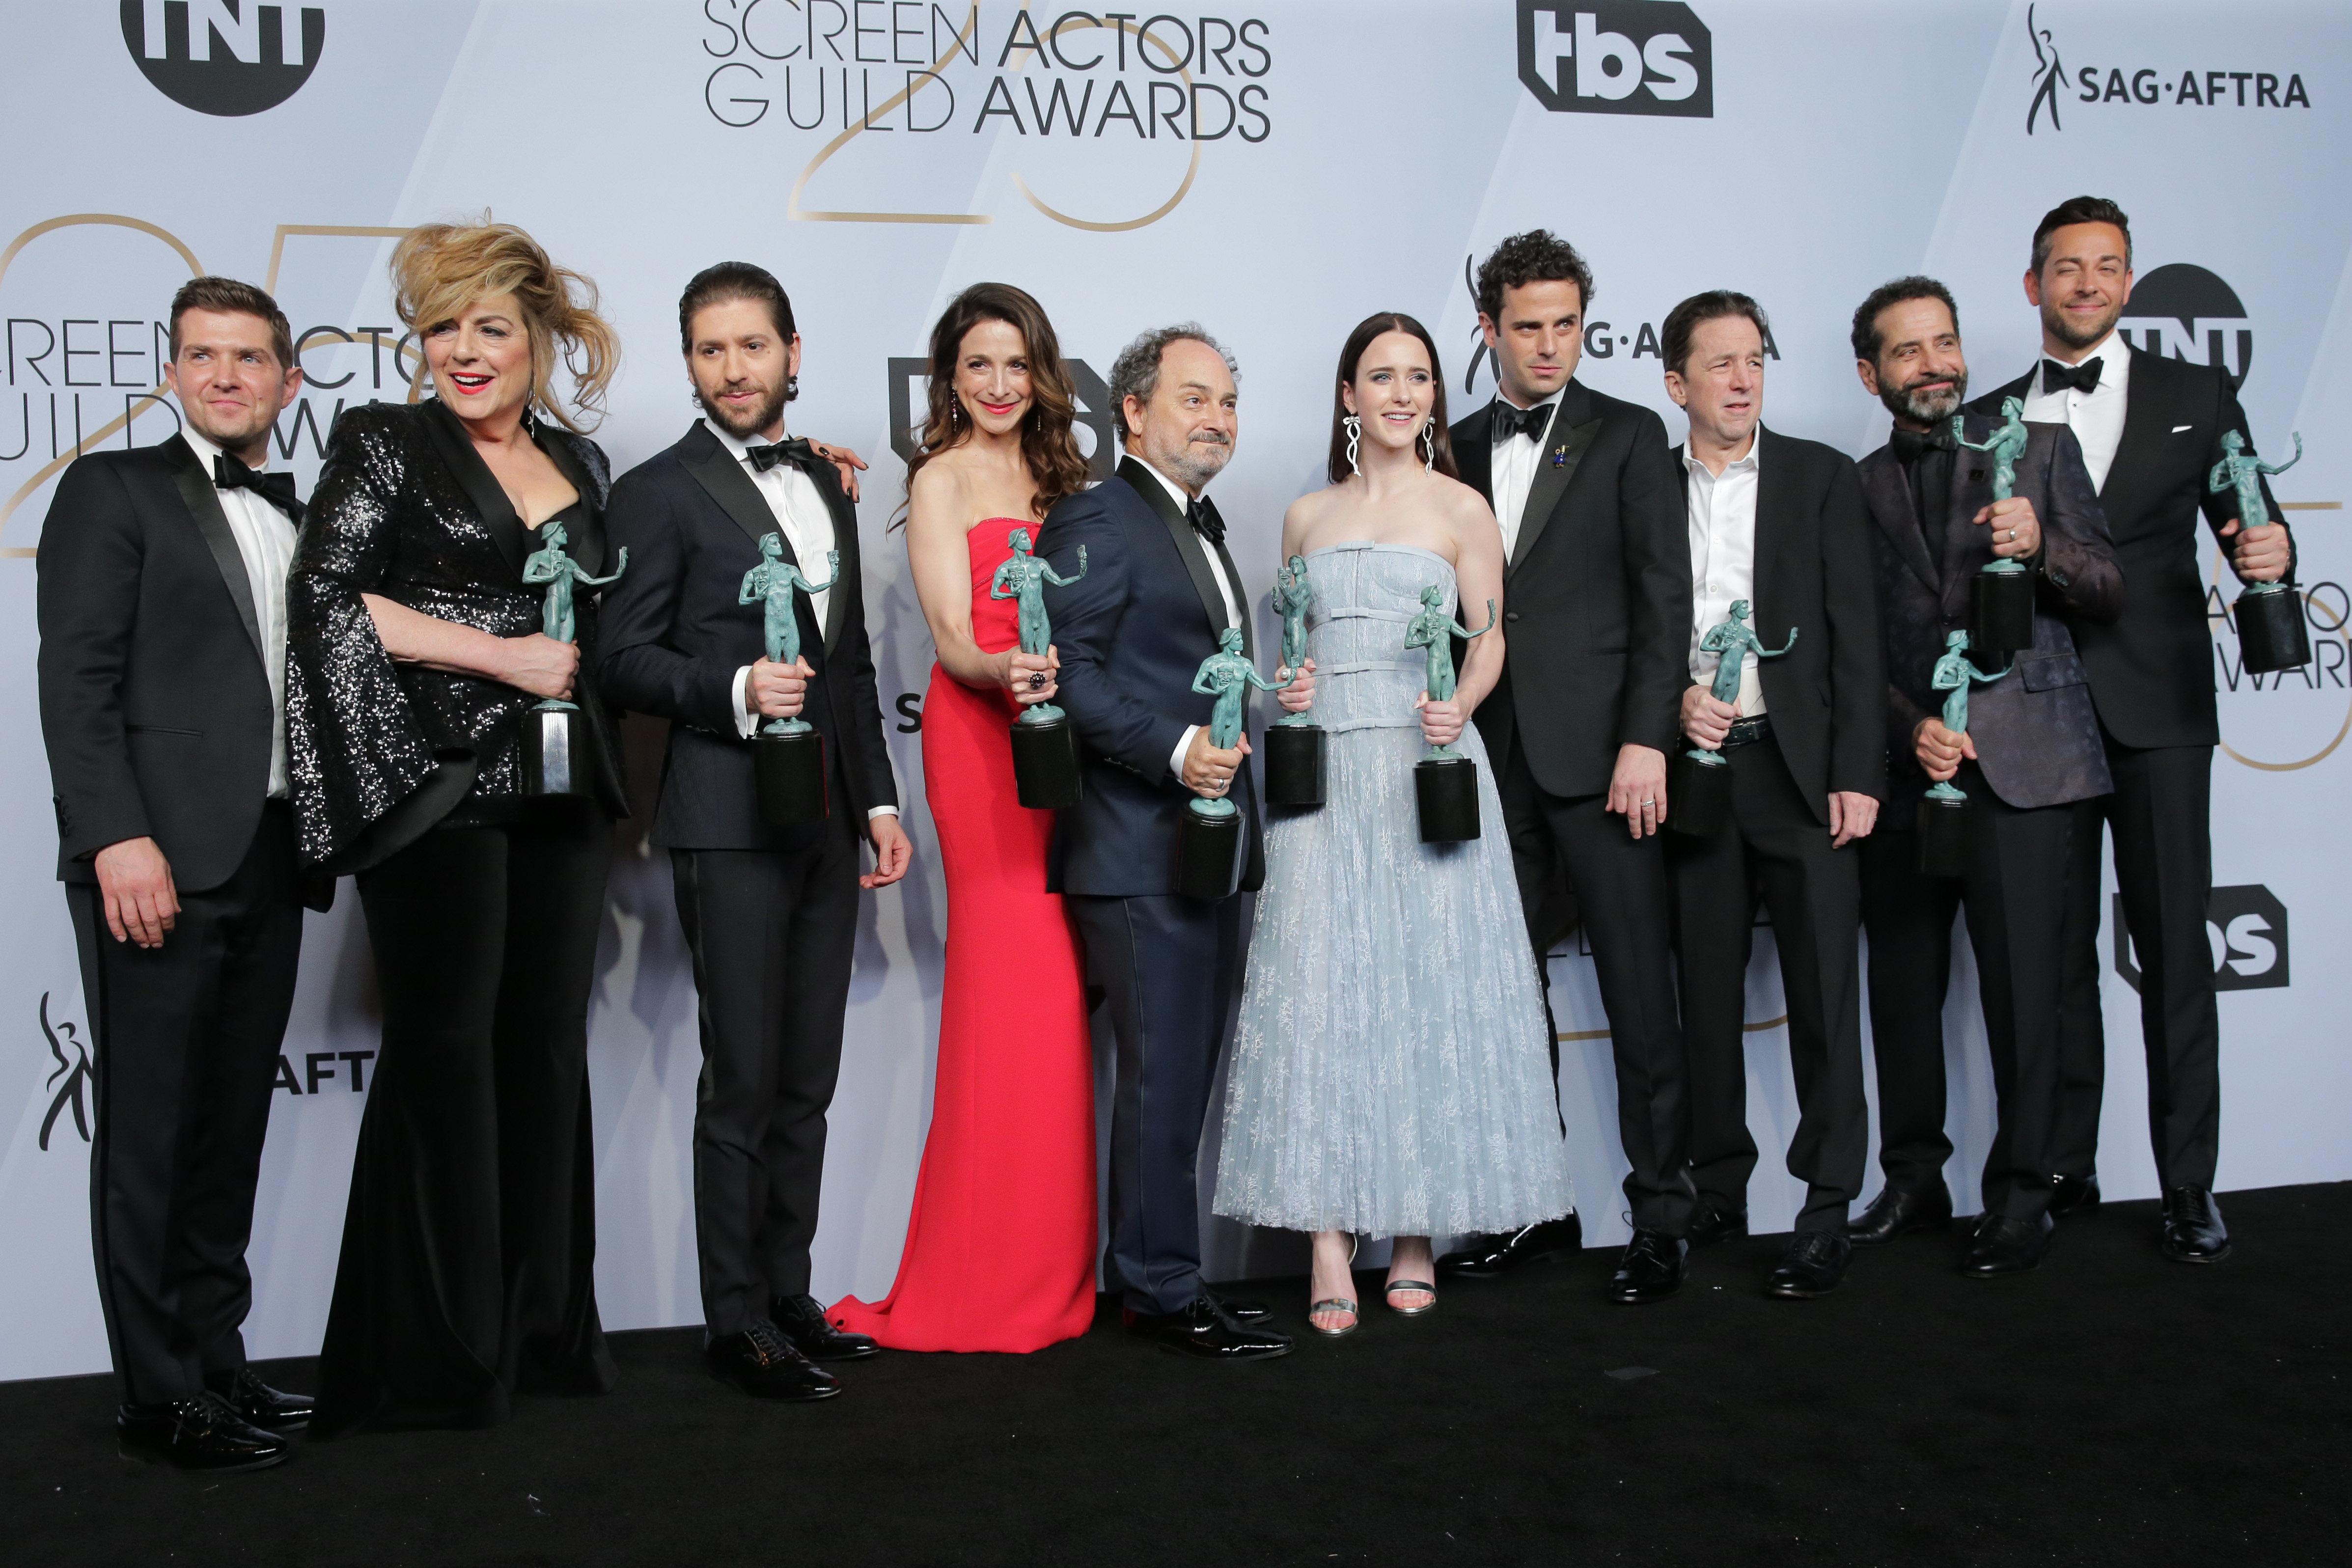 """Brian Tarantina (third from right) is pictured with the cast of """"The Mavelous Mrs. Maisel"""" at the 25th annual Screen ActorsGuild Awards in January in Los Angeles."""